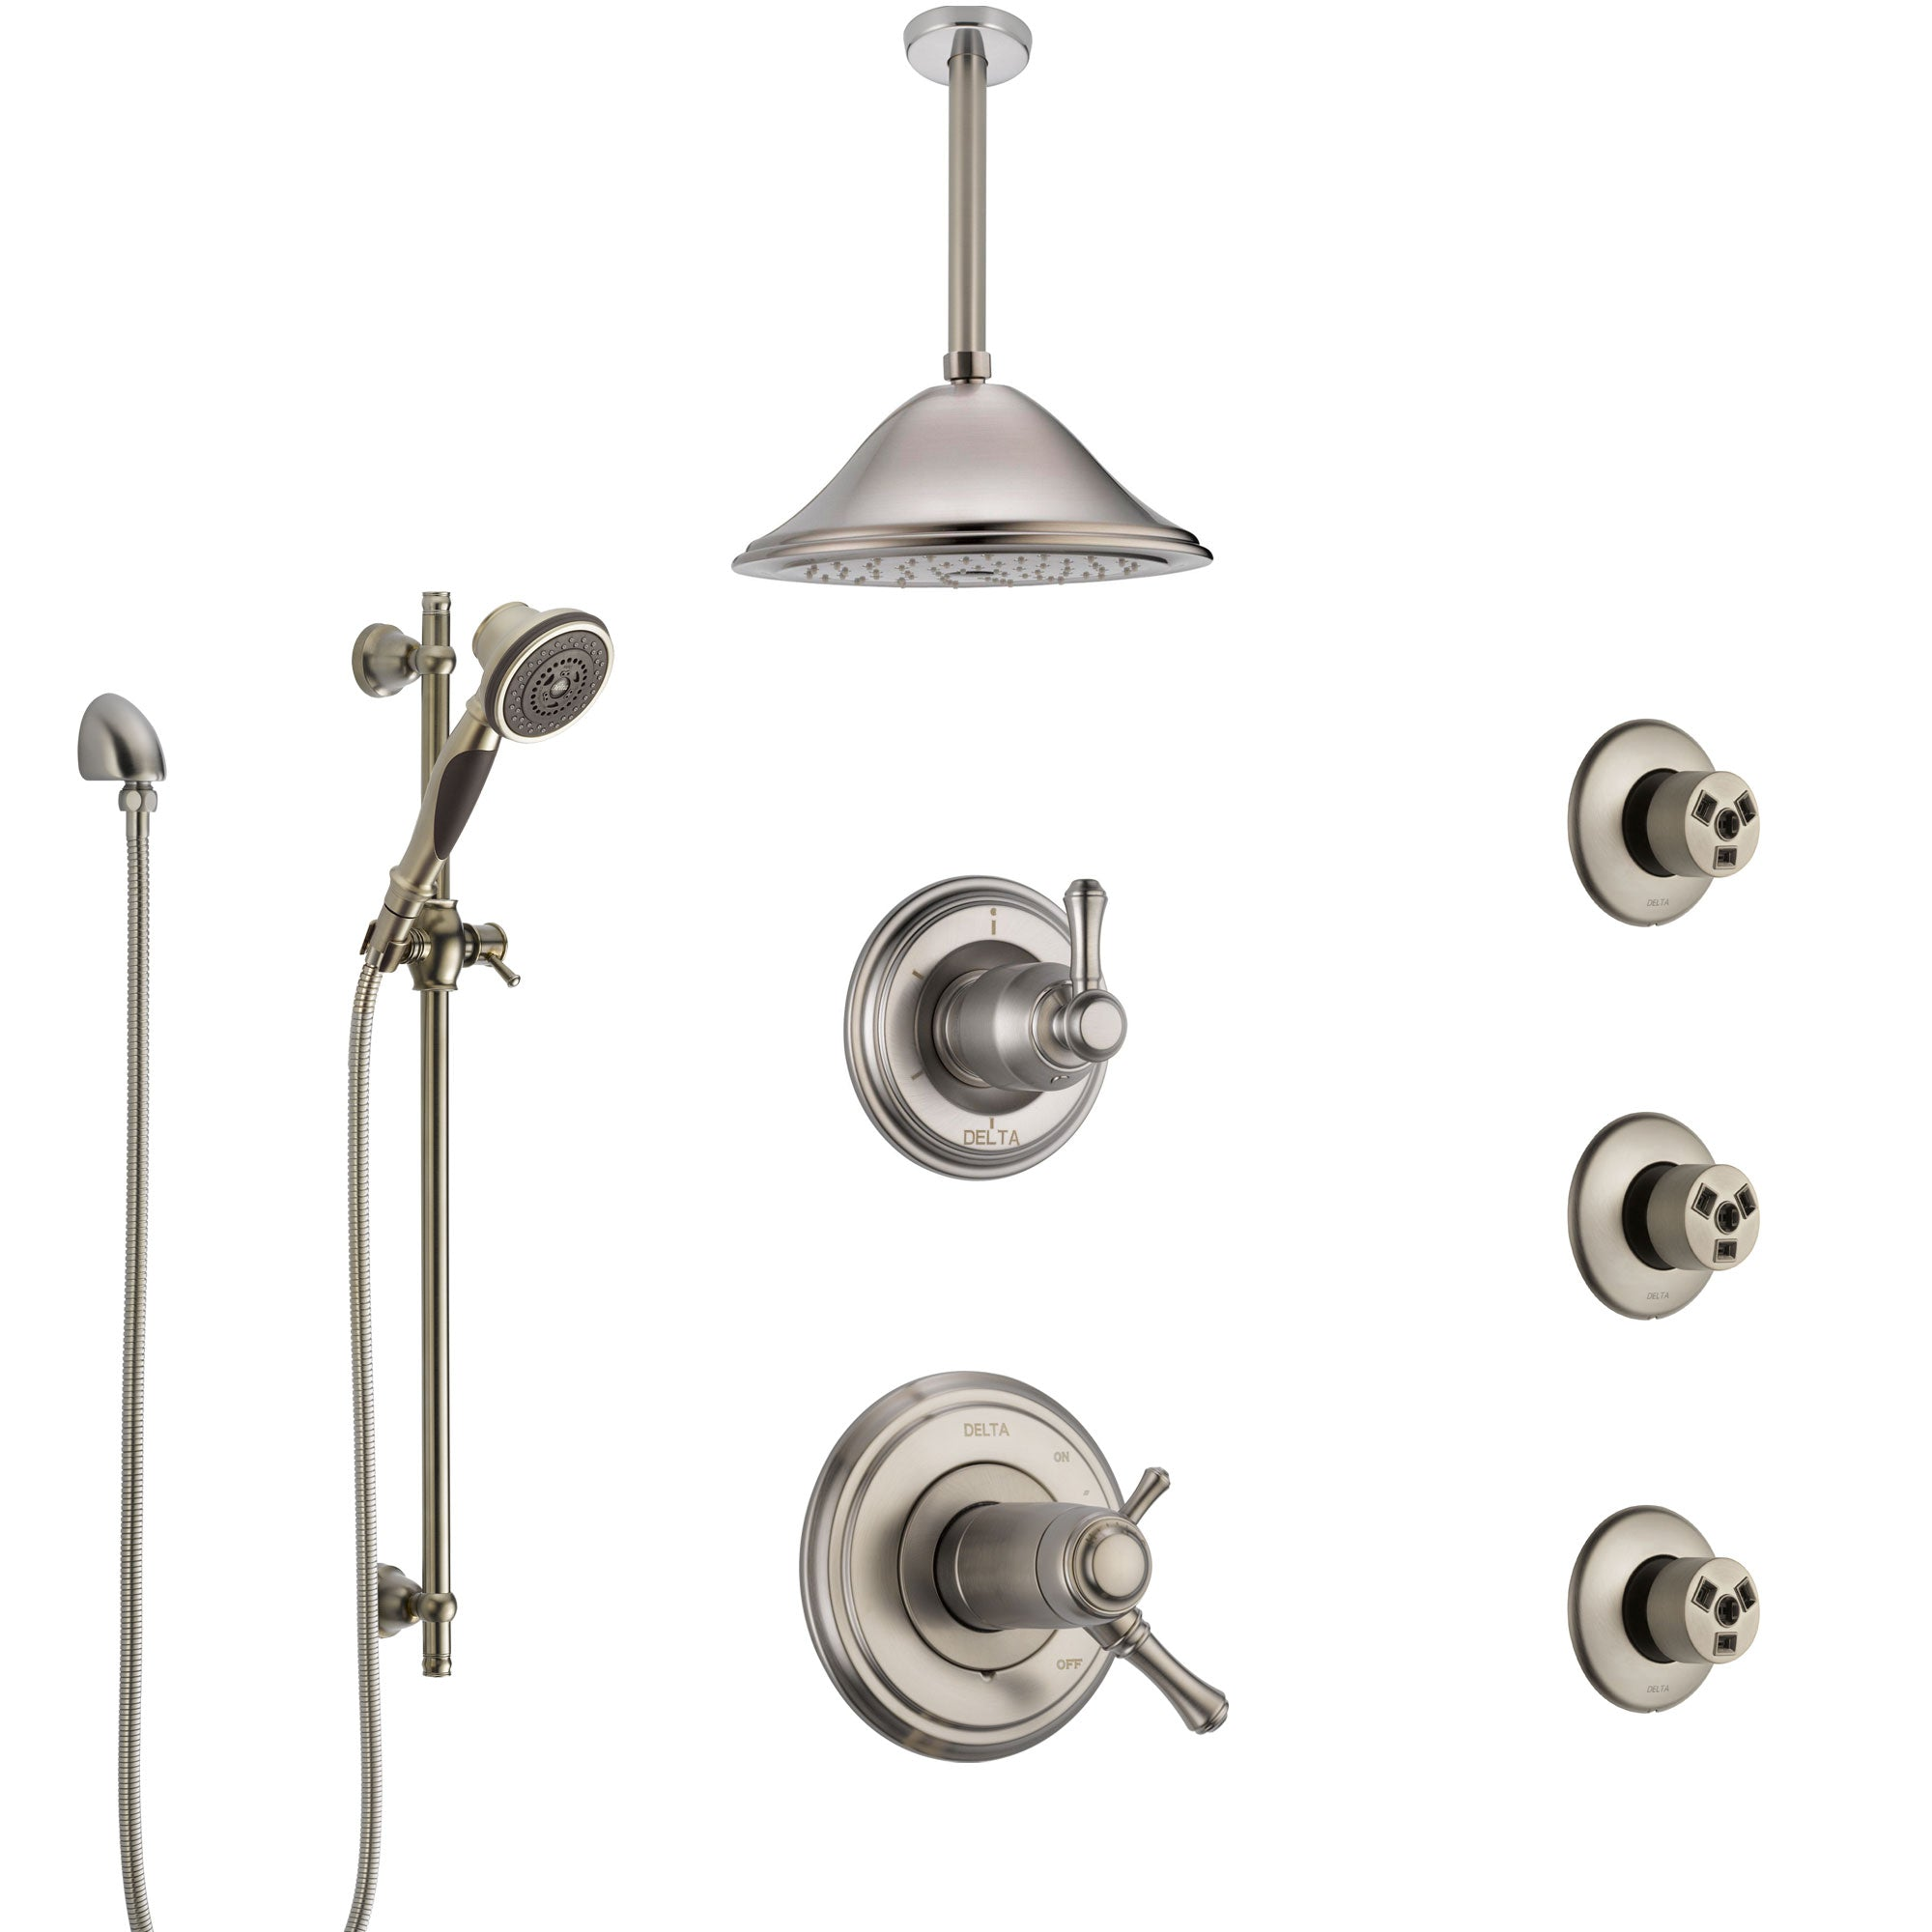 Delta Cassidy Dual Thermostatic Control Stainless Steel Finish Shower System, Diverter, Ceiling Showerhead, 3 Body Sprays, and Hand Shower SS17T971SS4